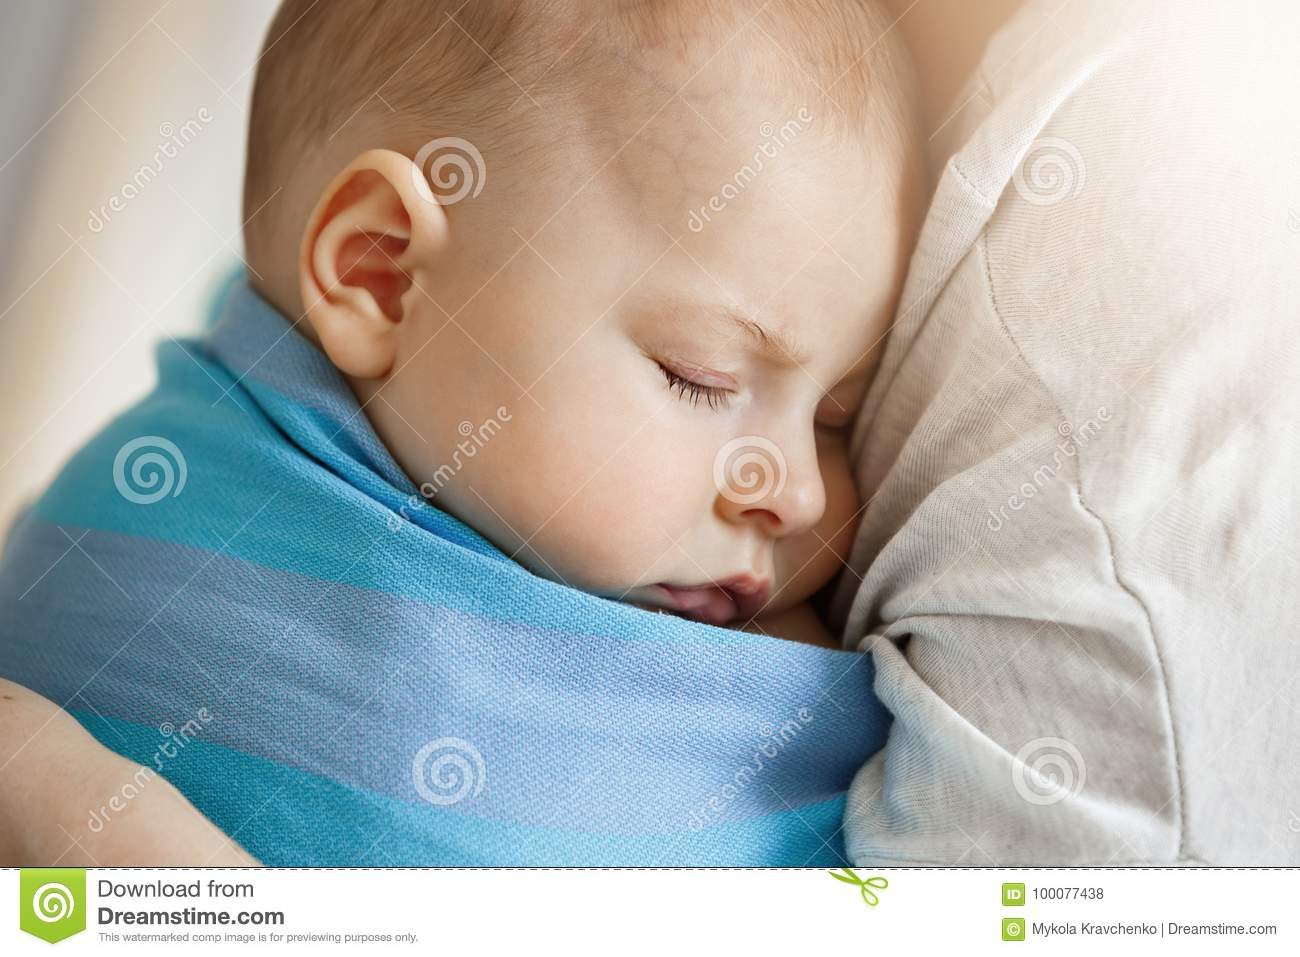 Close up portrait of innocent little child, sleeping on mother hands in blue baby sling. Quite and relaxing scene